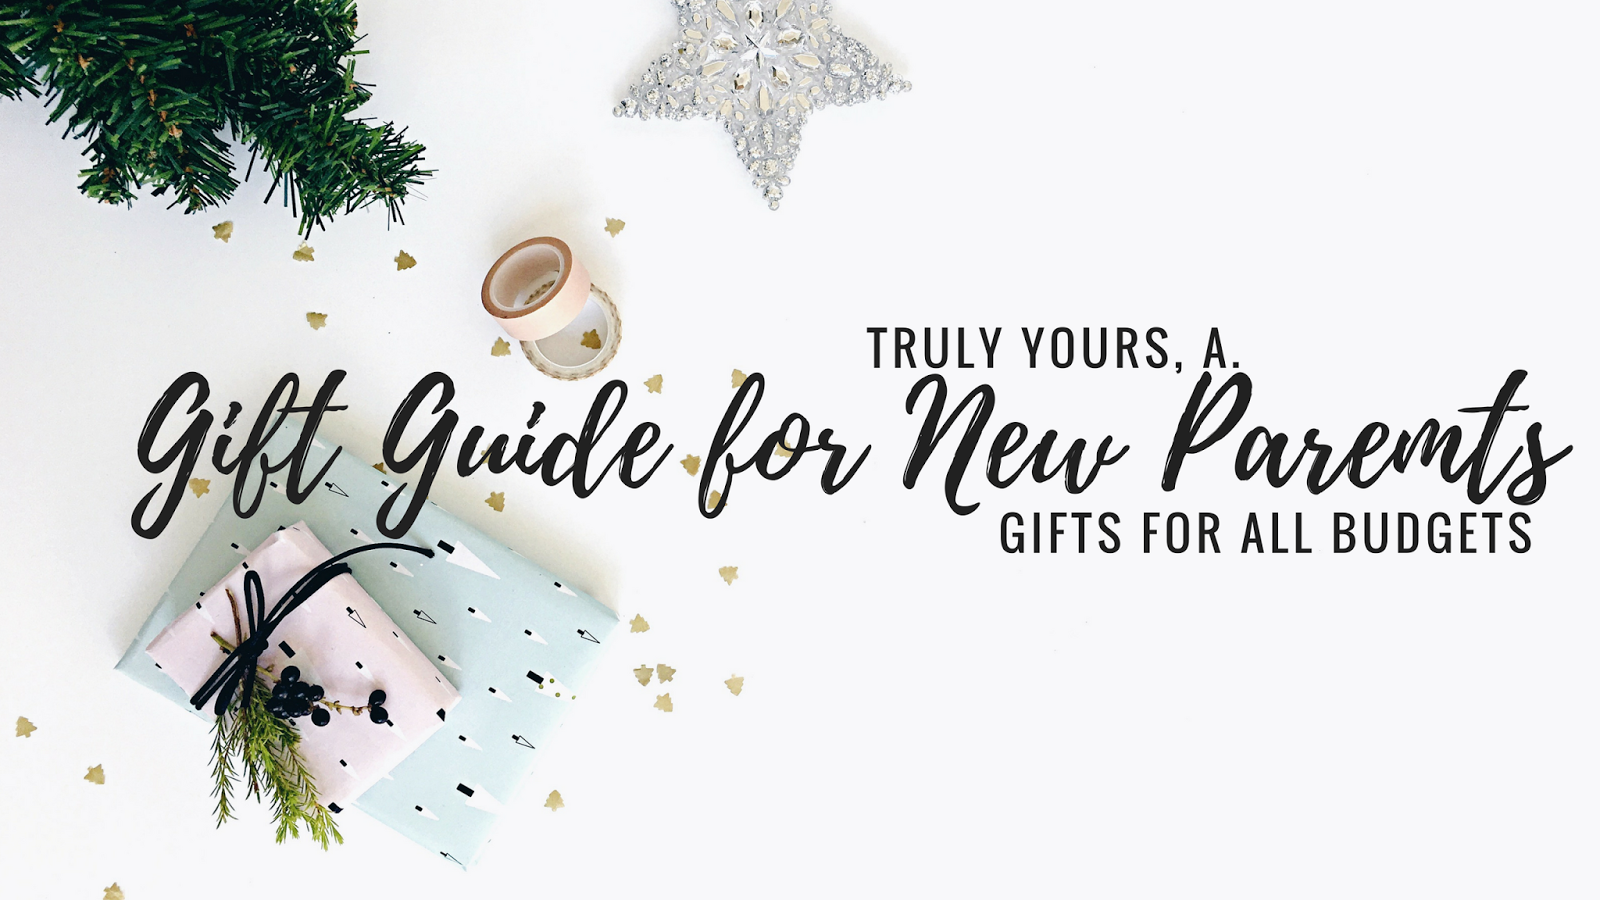 Truly Yours A Gift Guide For New Parents